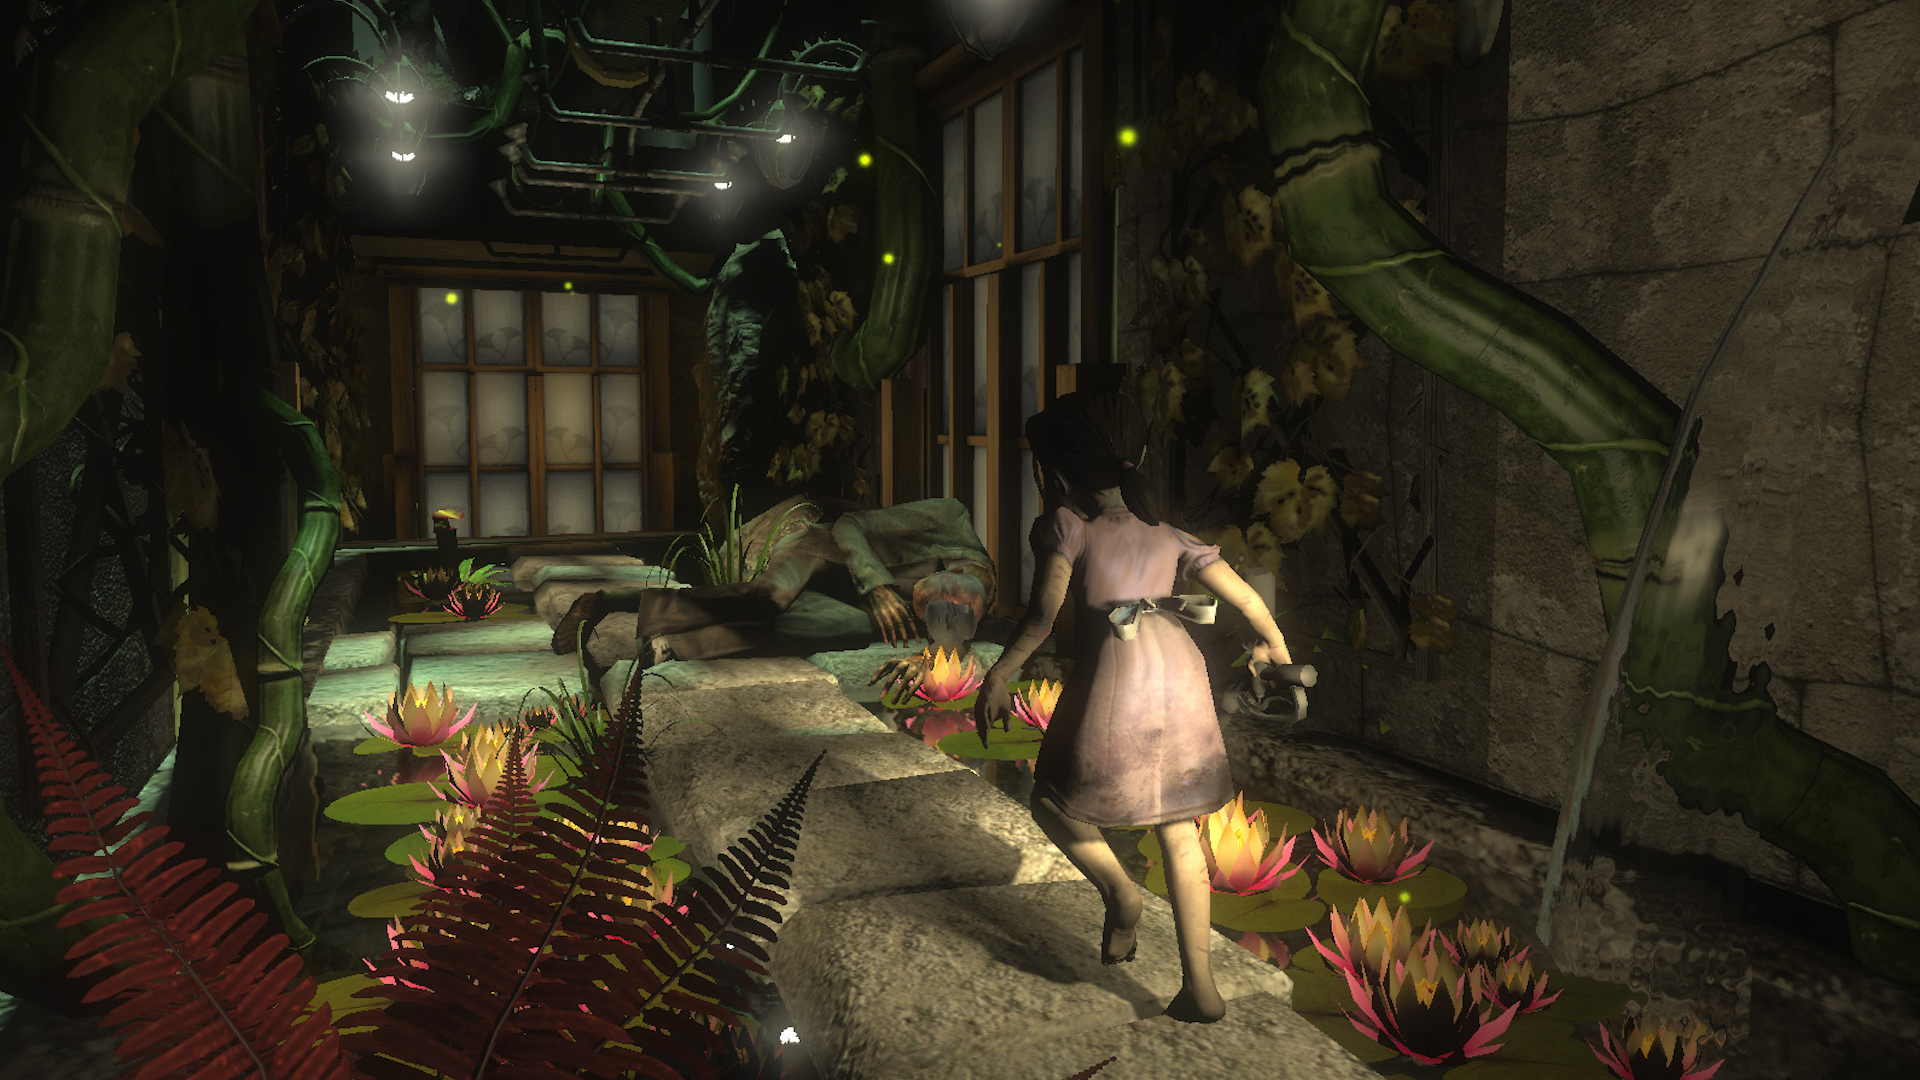 bioshock_screen_13